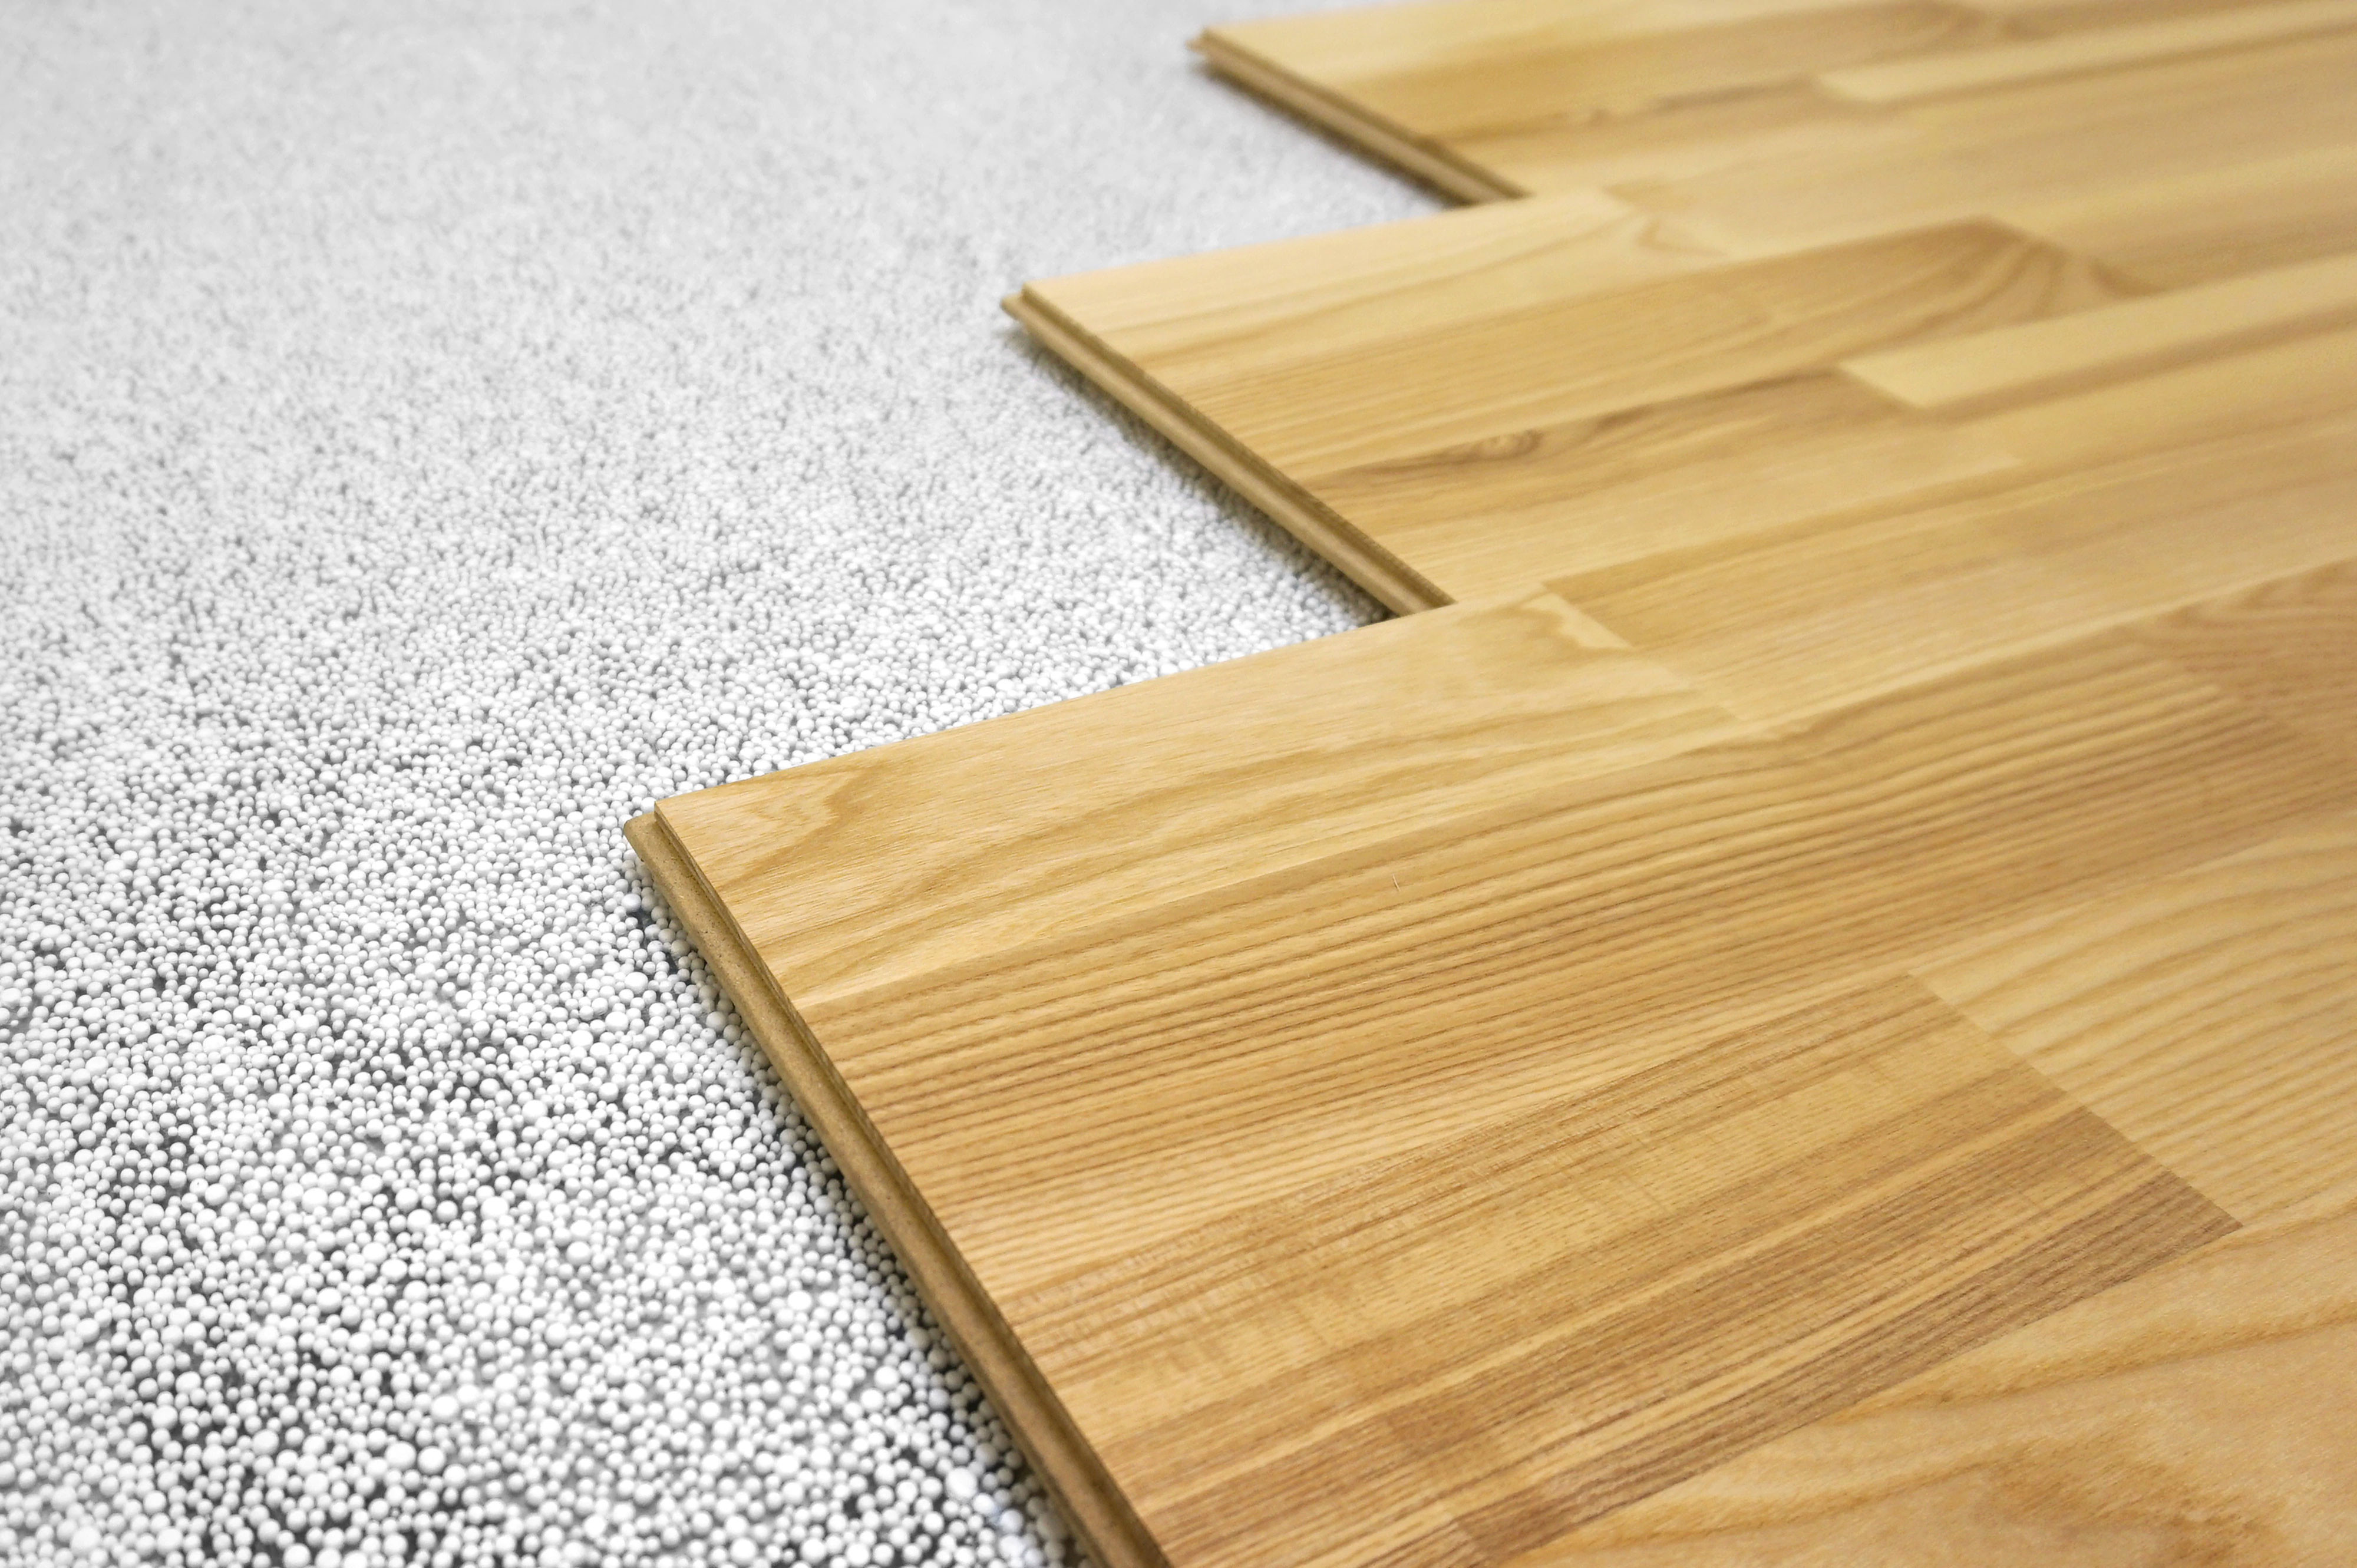 above all hardwood floors of what does it cost to install laminate flooring angies list within wood lam